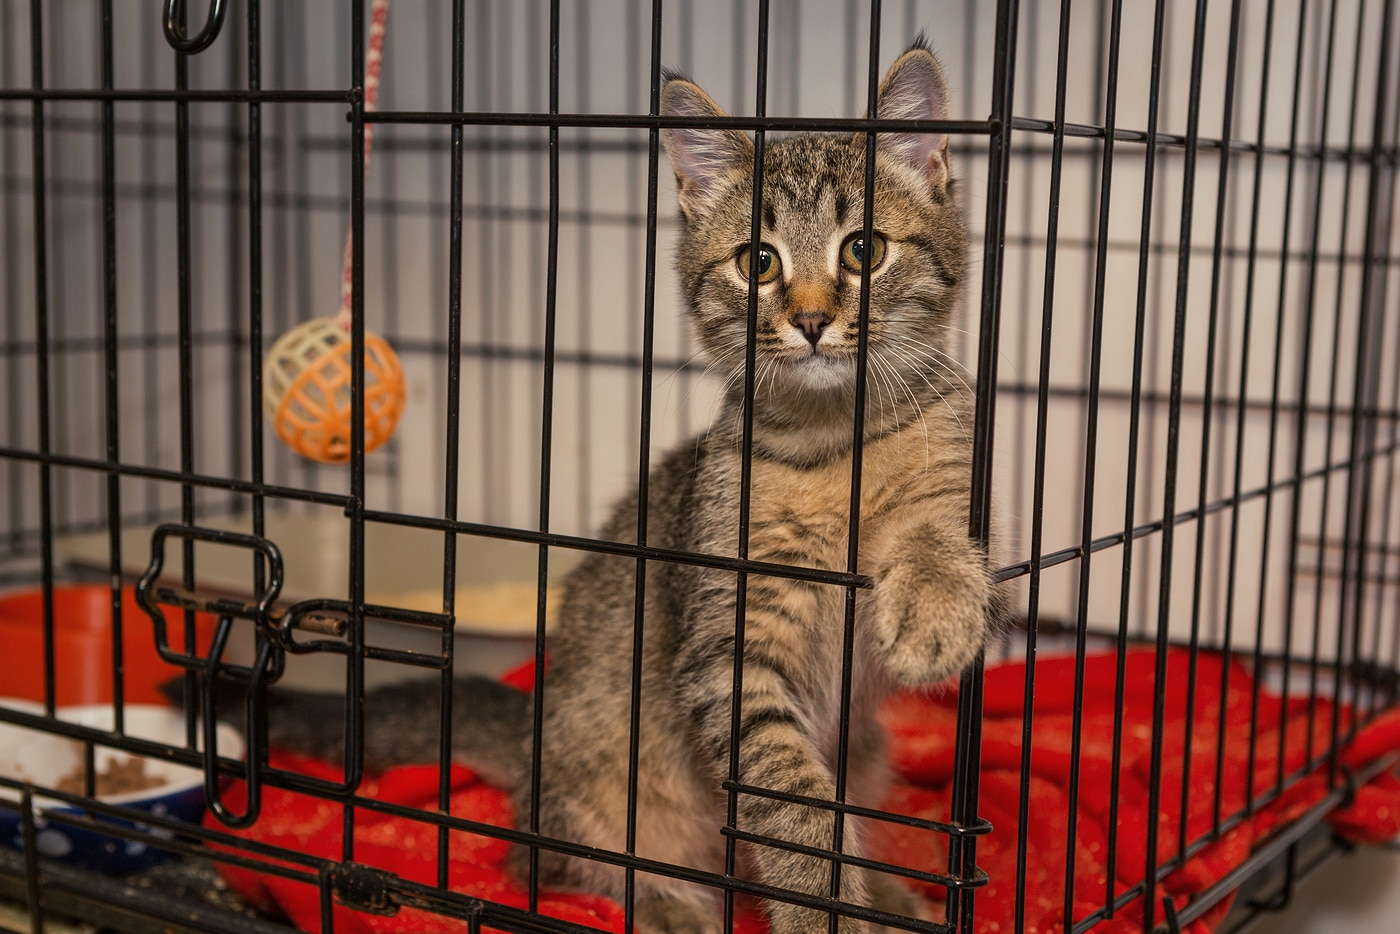 Little kitten in the shelter elegantly posing in a cage